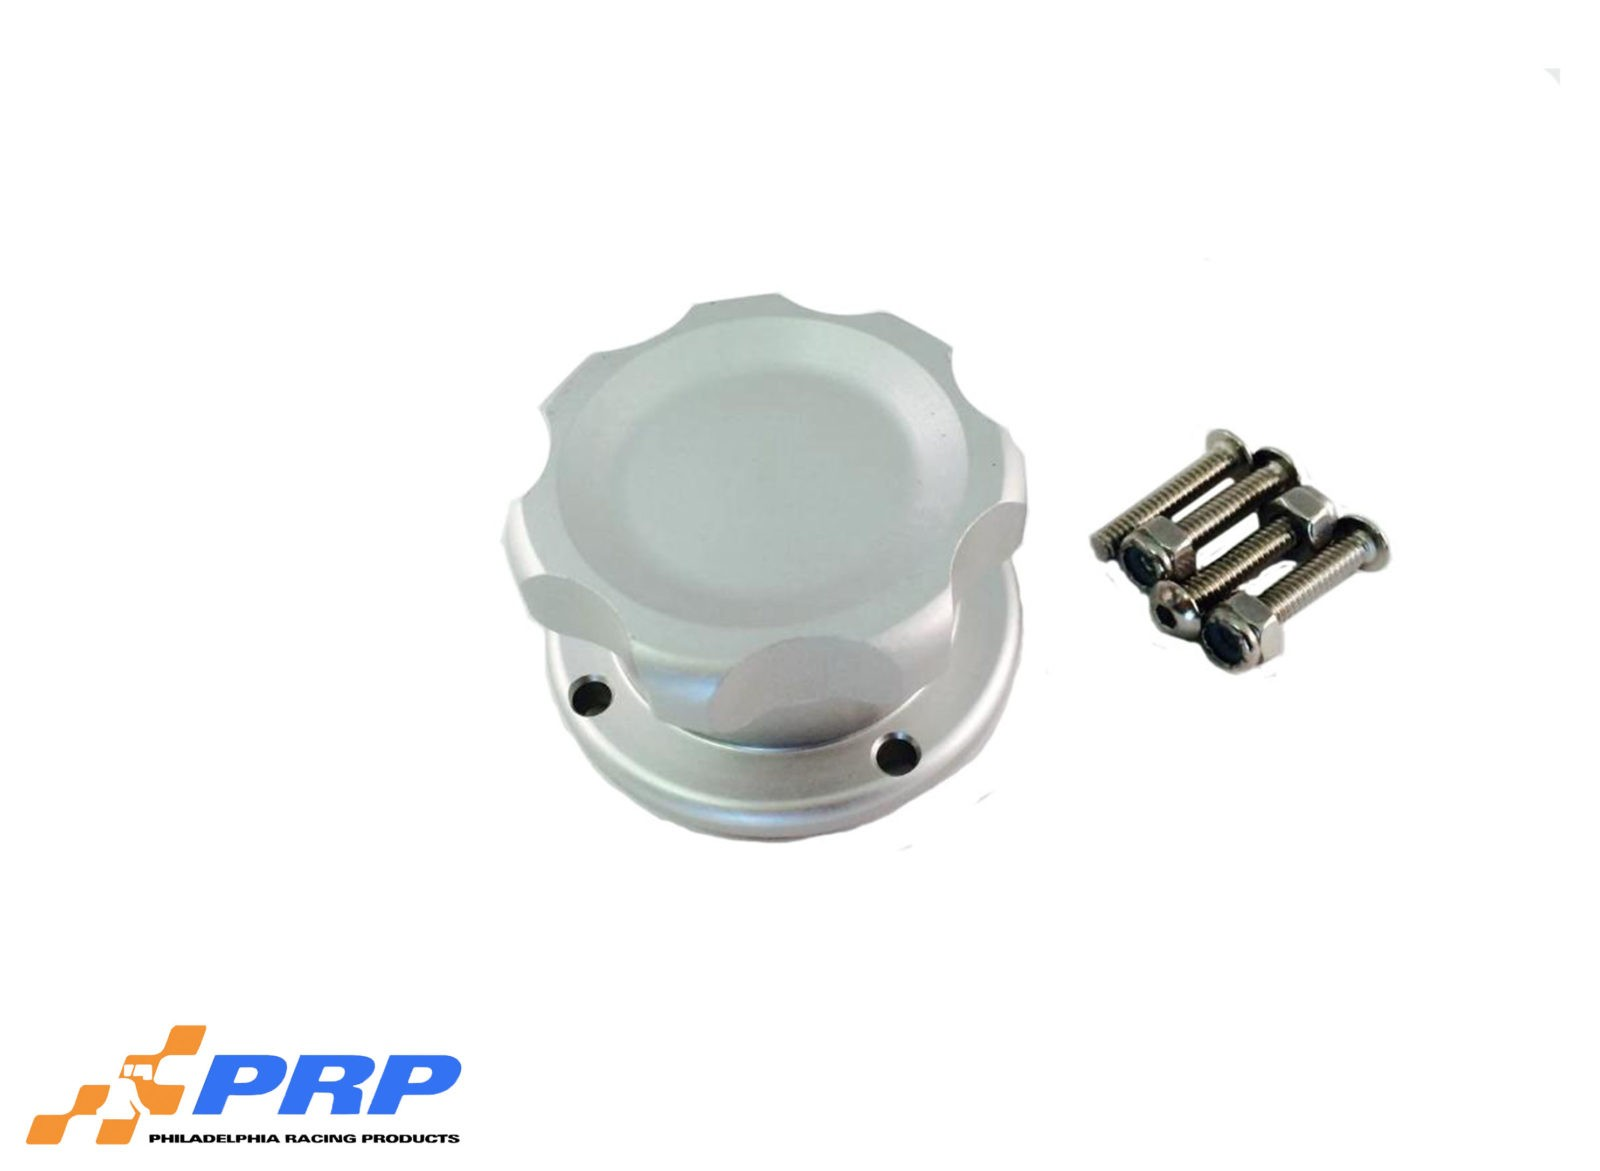 Clear Anodized Small Billet Filler Cap Kit with four bolt bung made by PRP Racing Products